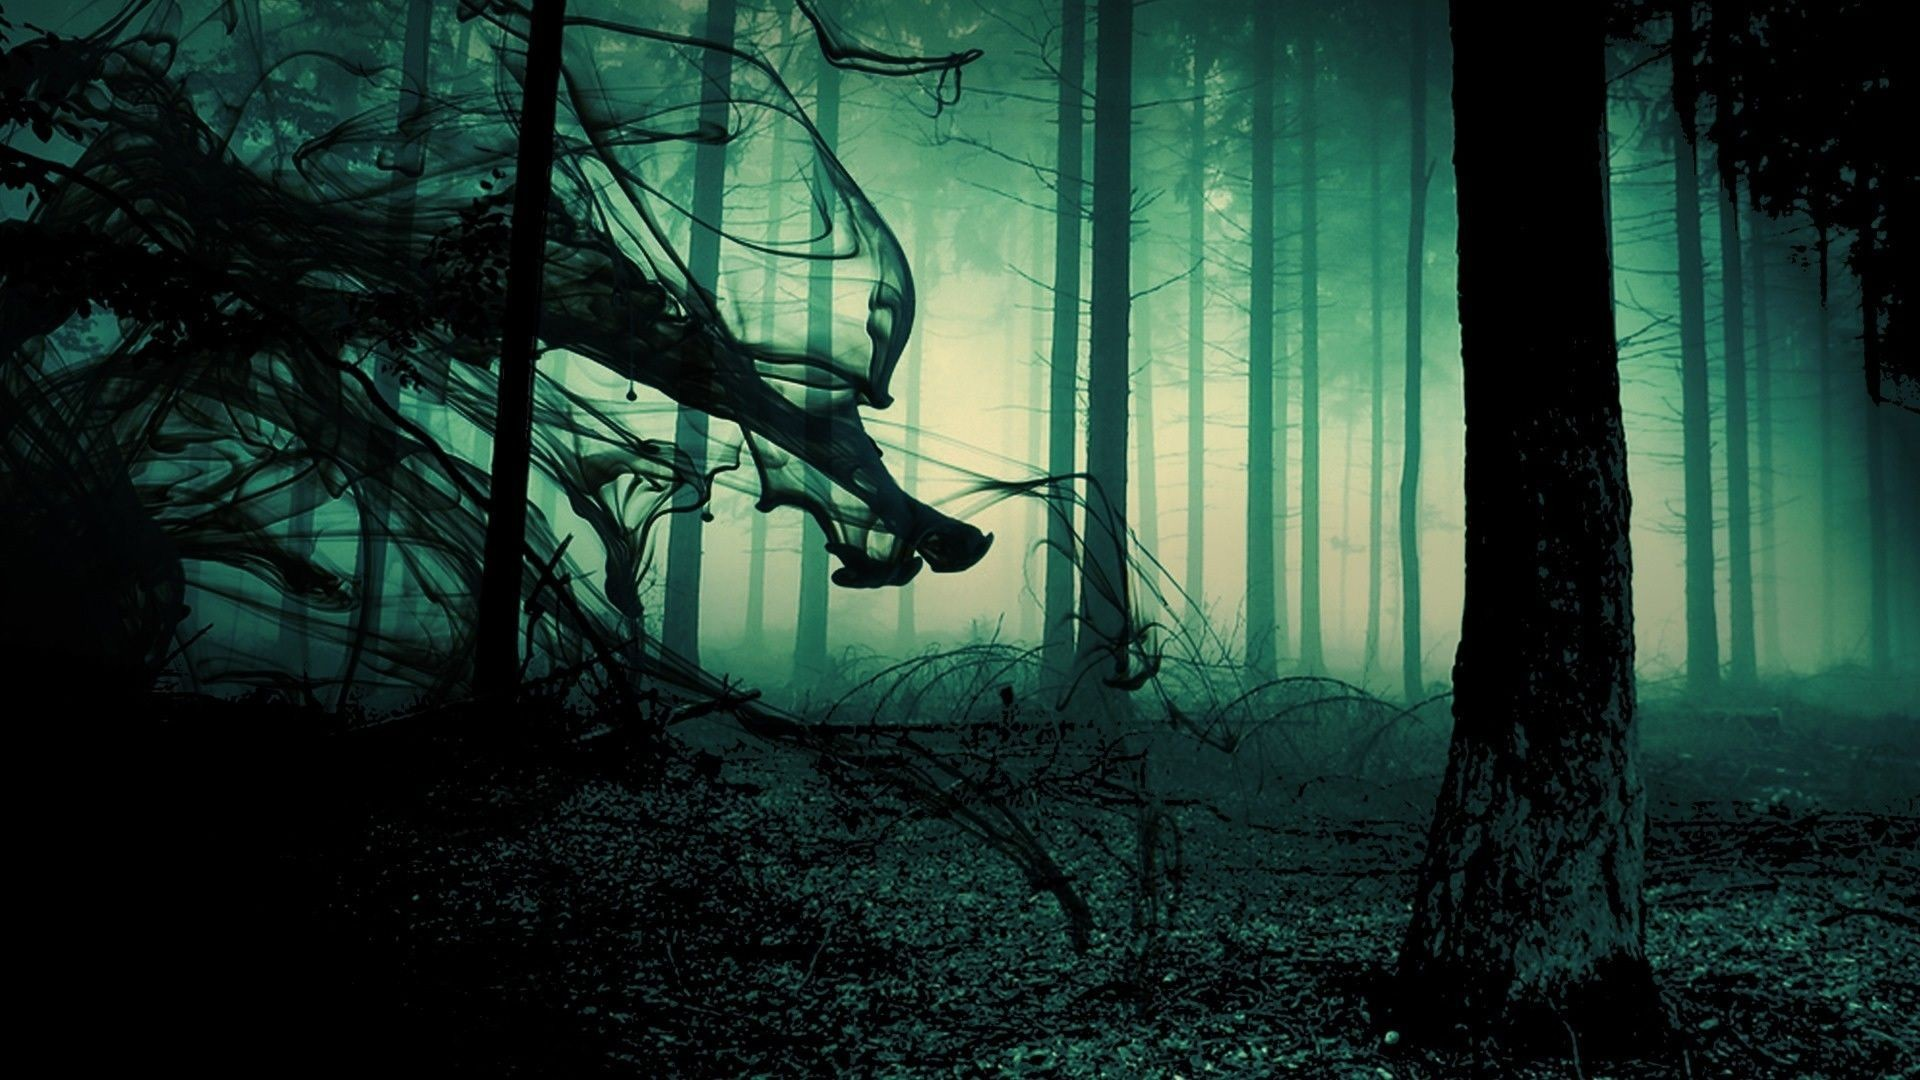 1920x1080 spooky forest background - Google Search